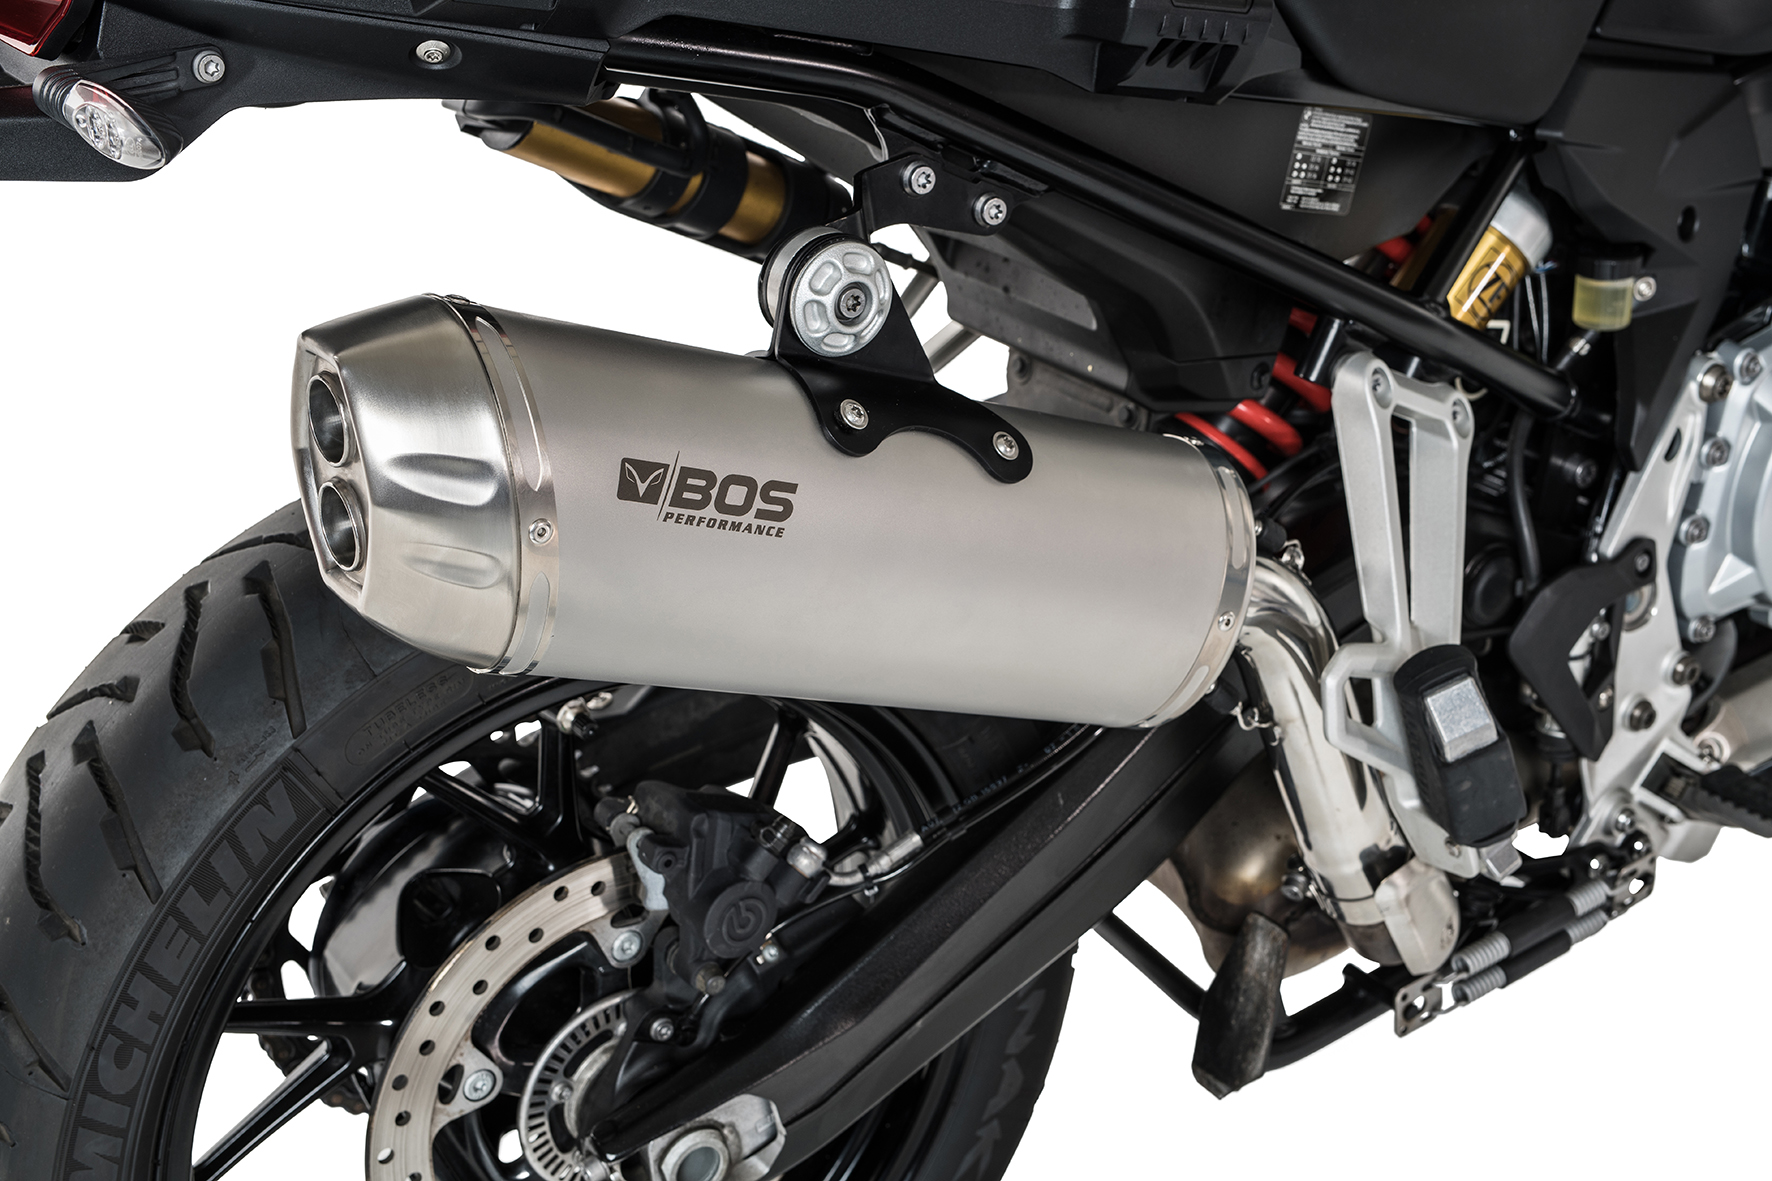 F 750 GS / F 850 GS Dune Fox Slip-on Euro 4 2